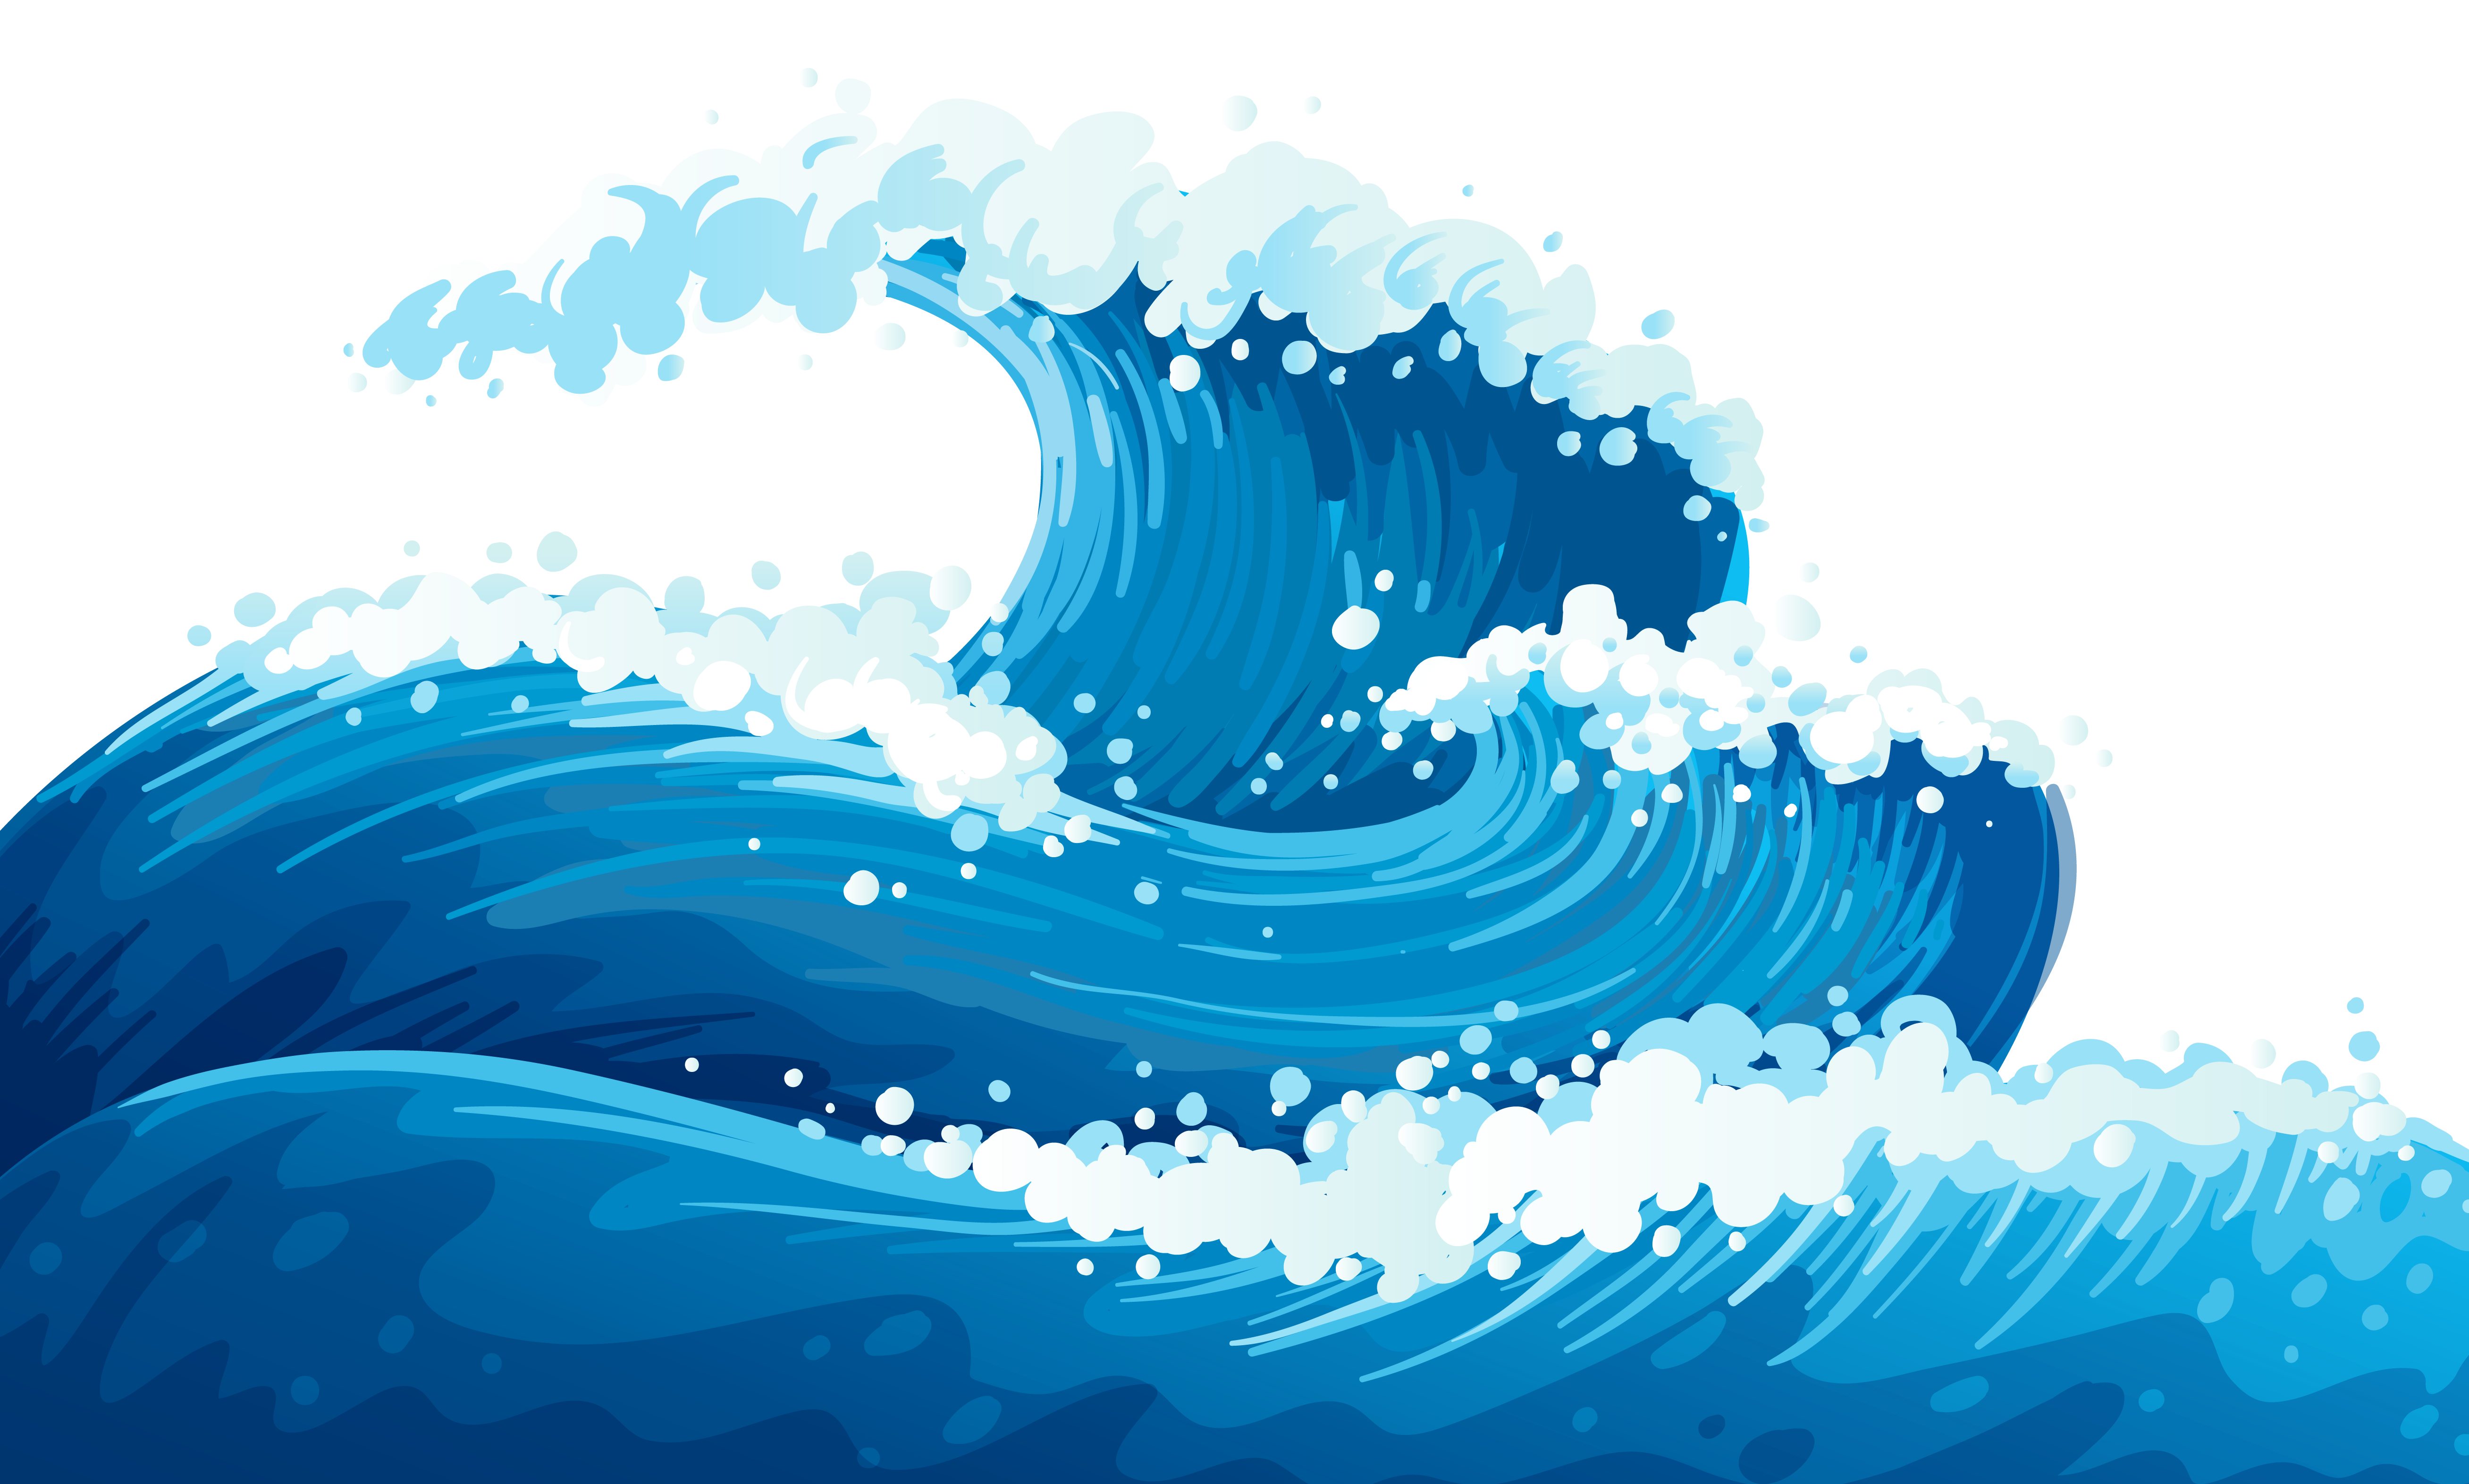 Sea png images free. Waves clipart huge wave